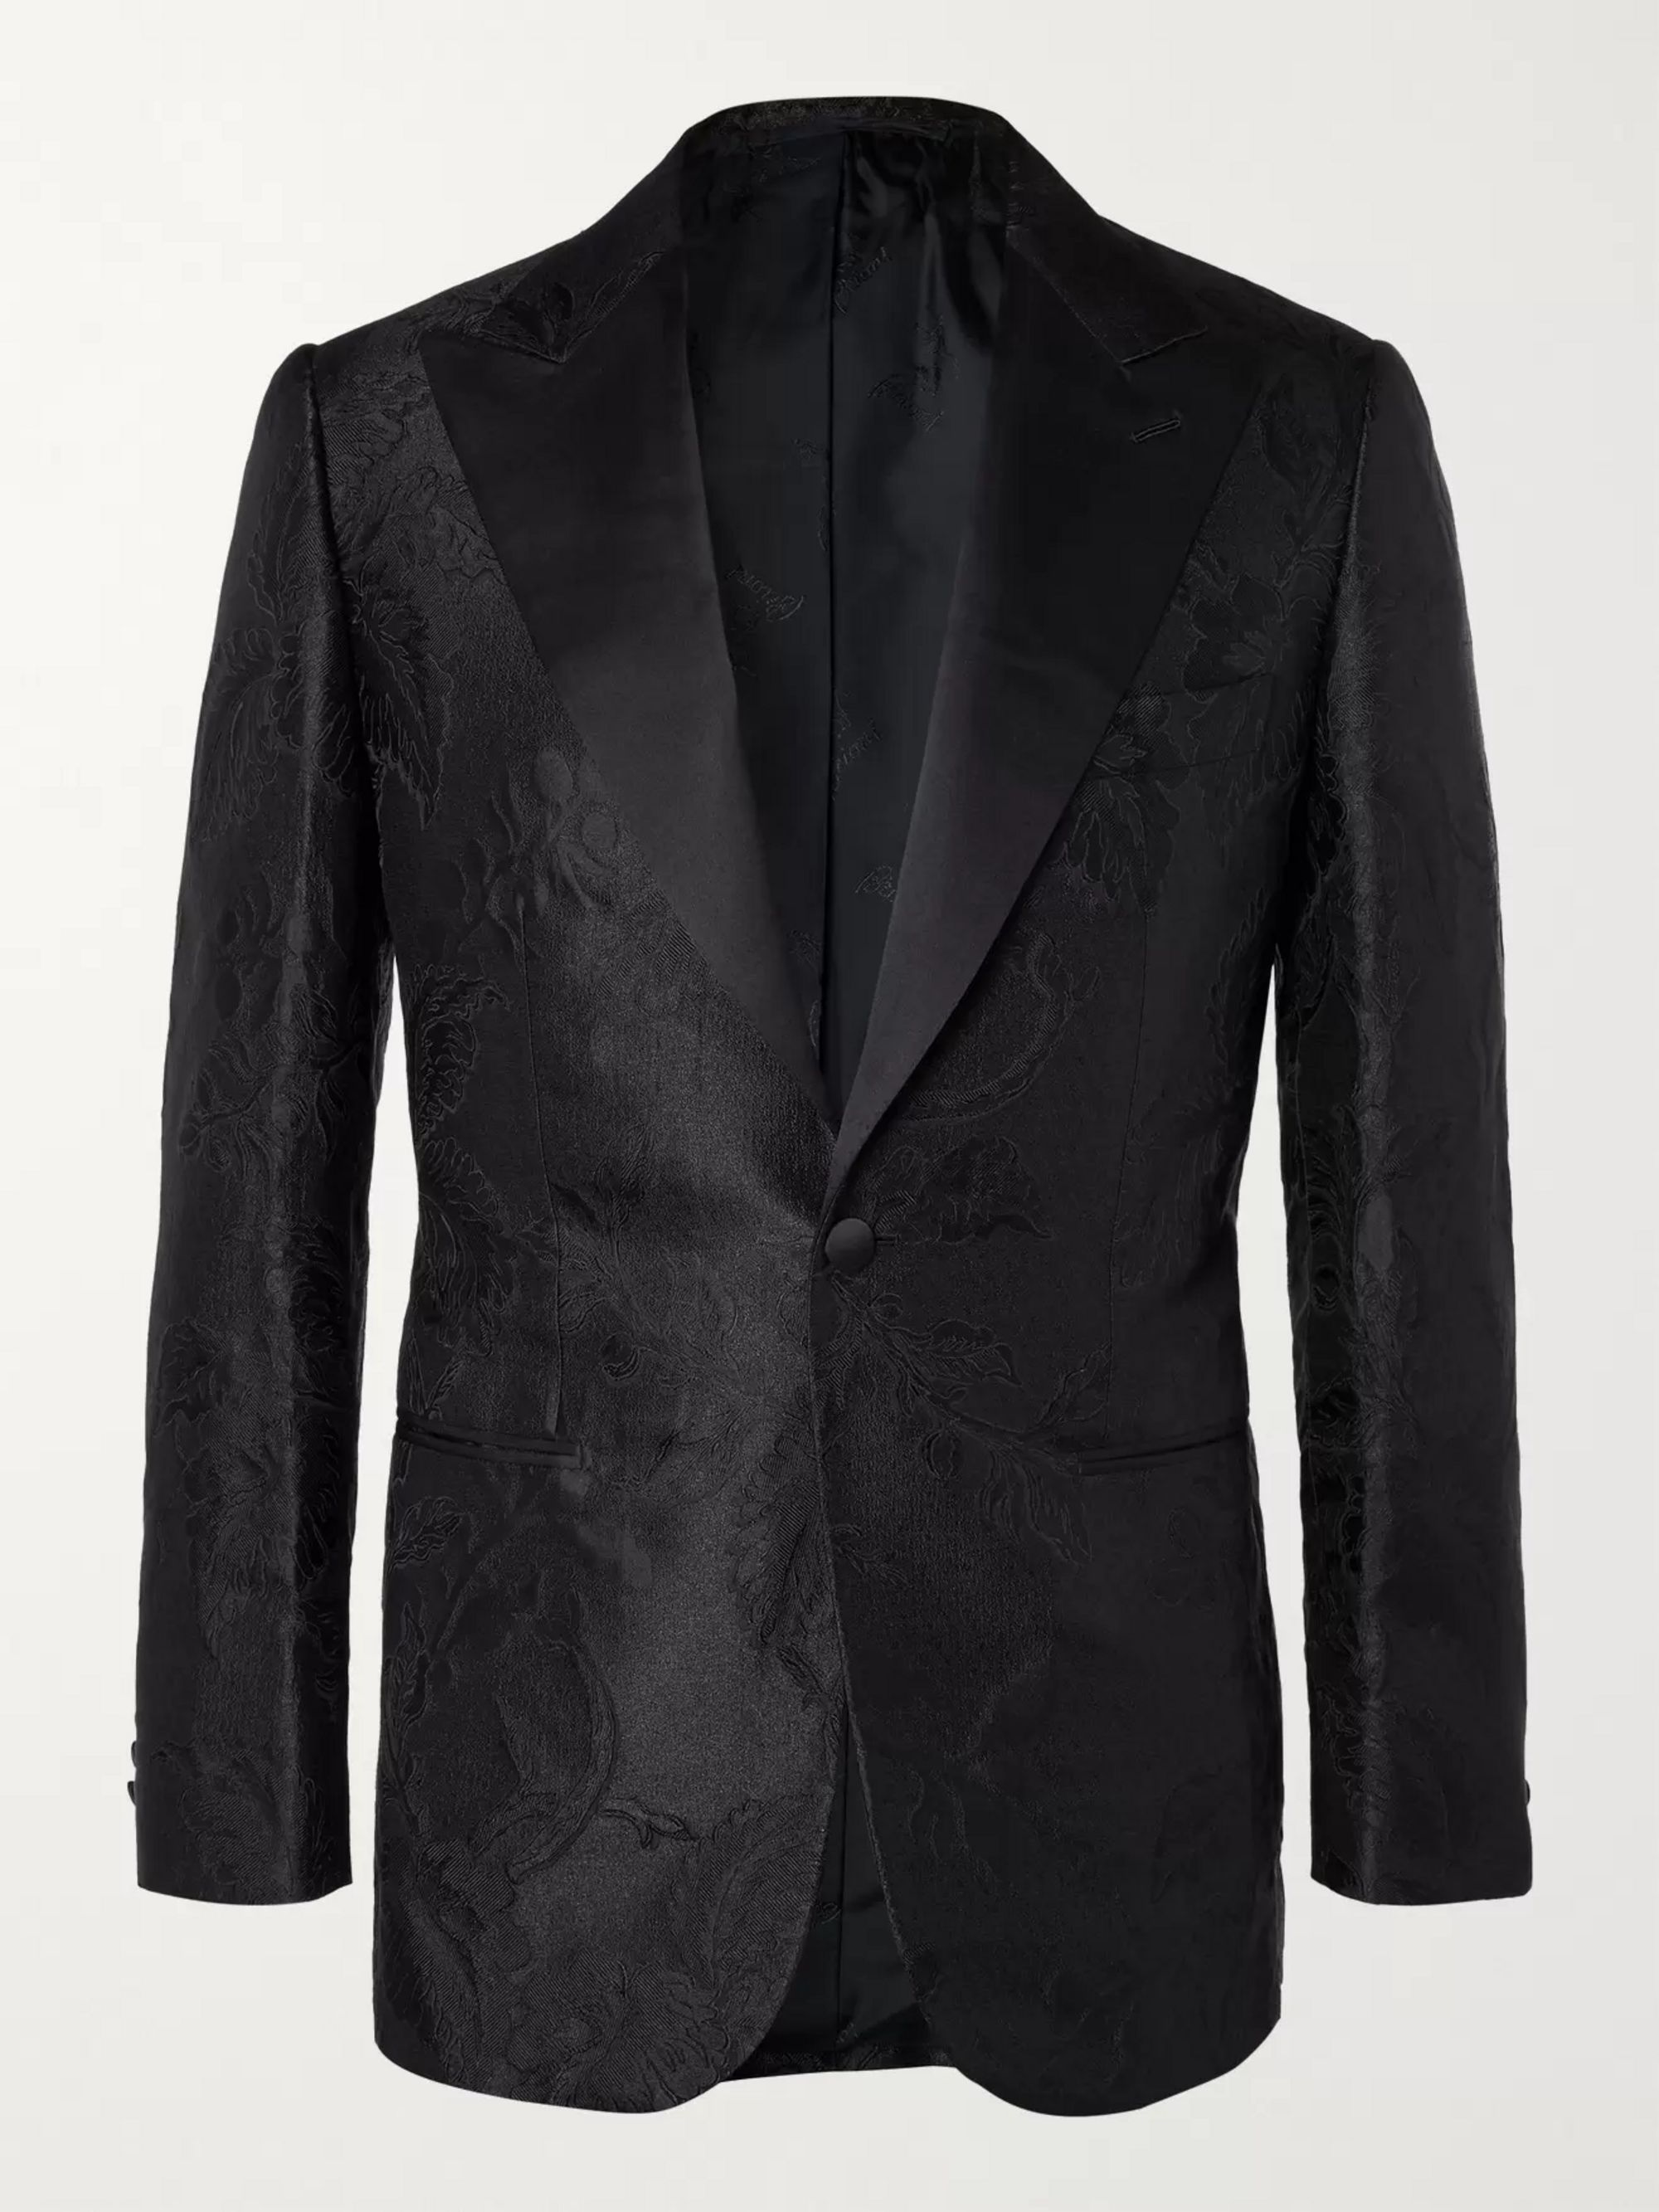 BRIONI Virgilio Slim-Fit Satin-Trimmed Silk-Blend Jacquard Tuxedo Jacket